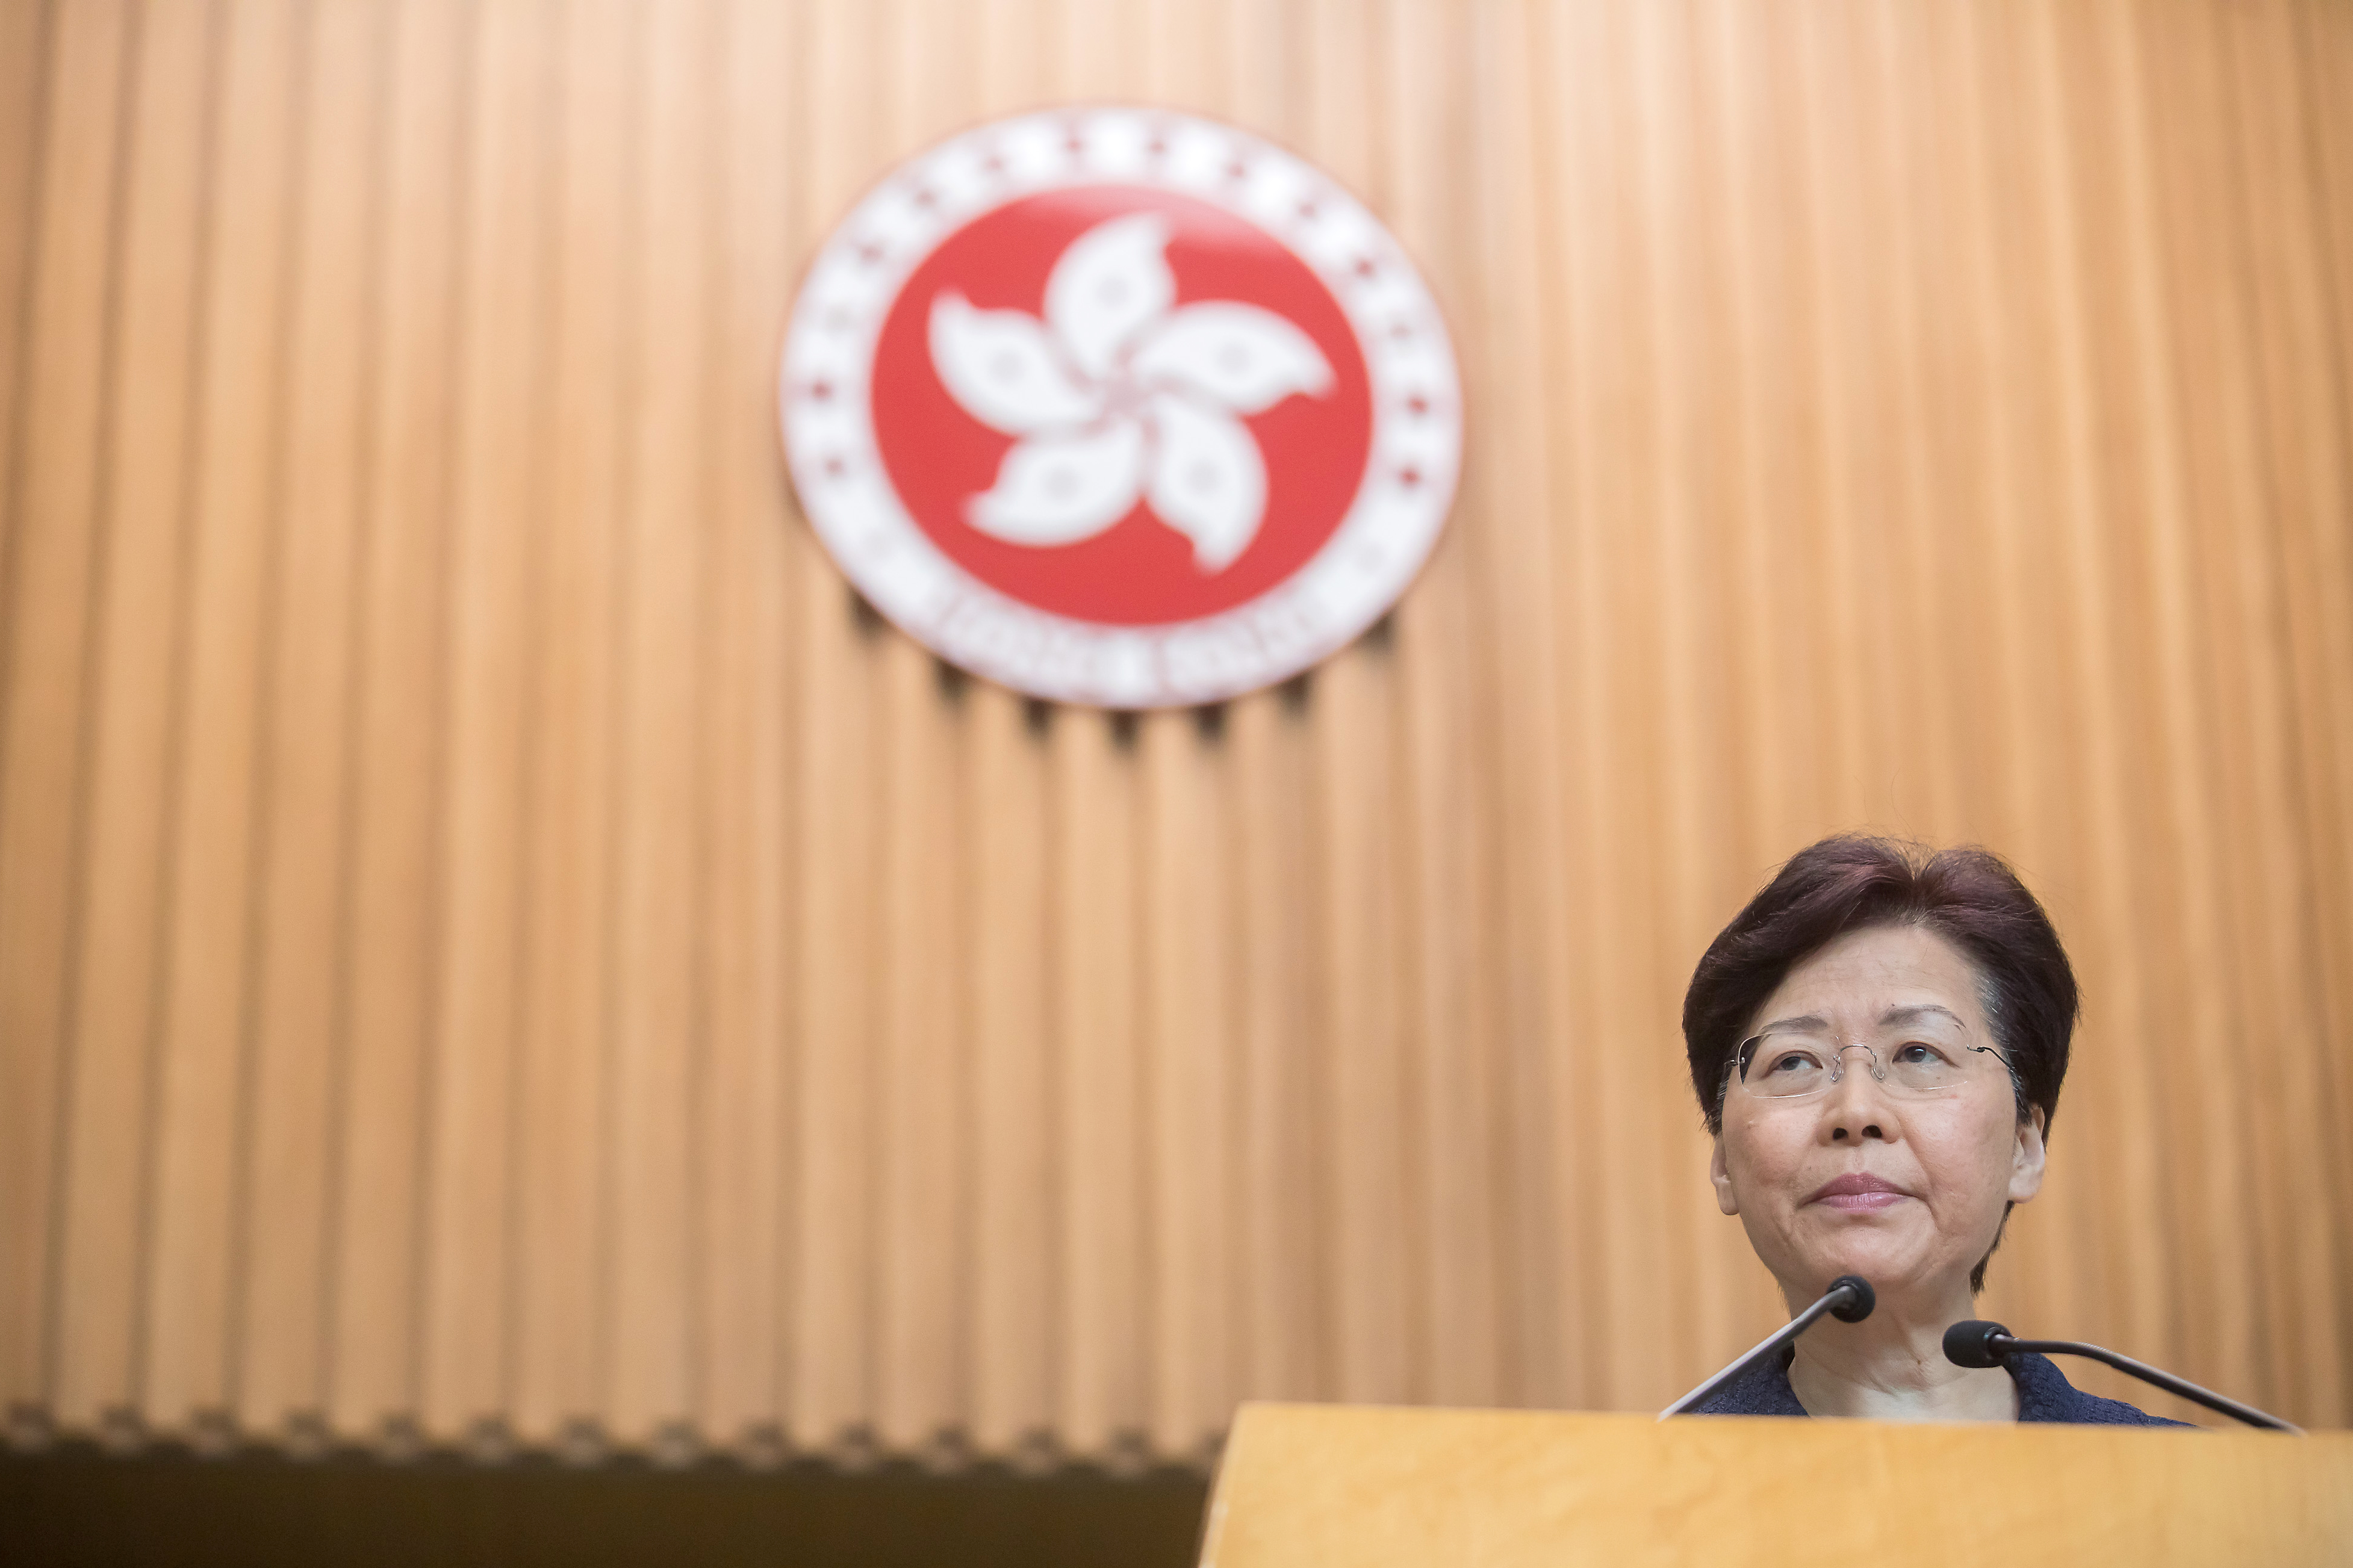 Carrie Lam, Hong Kong's chief executive, speaks during a news conference in Hong Kong, China, on Tuesday, Aug. 20, 2019.